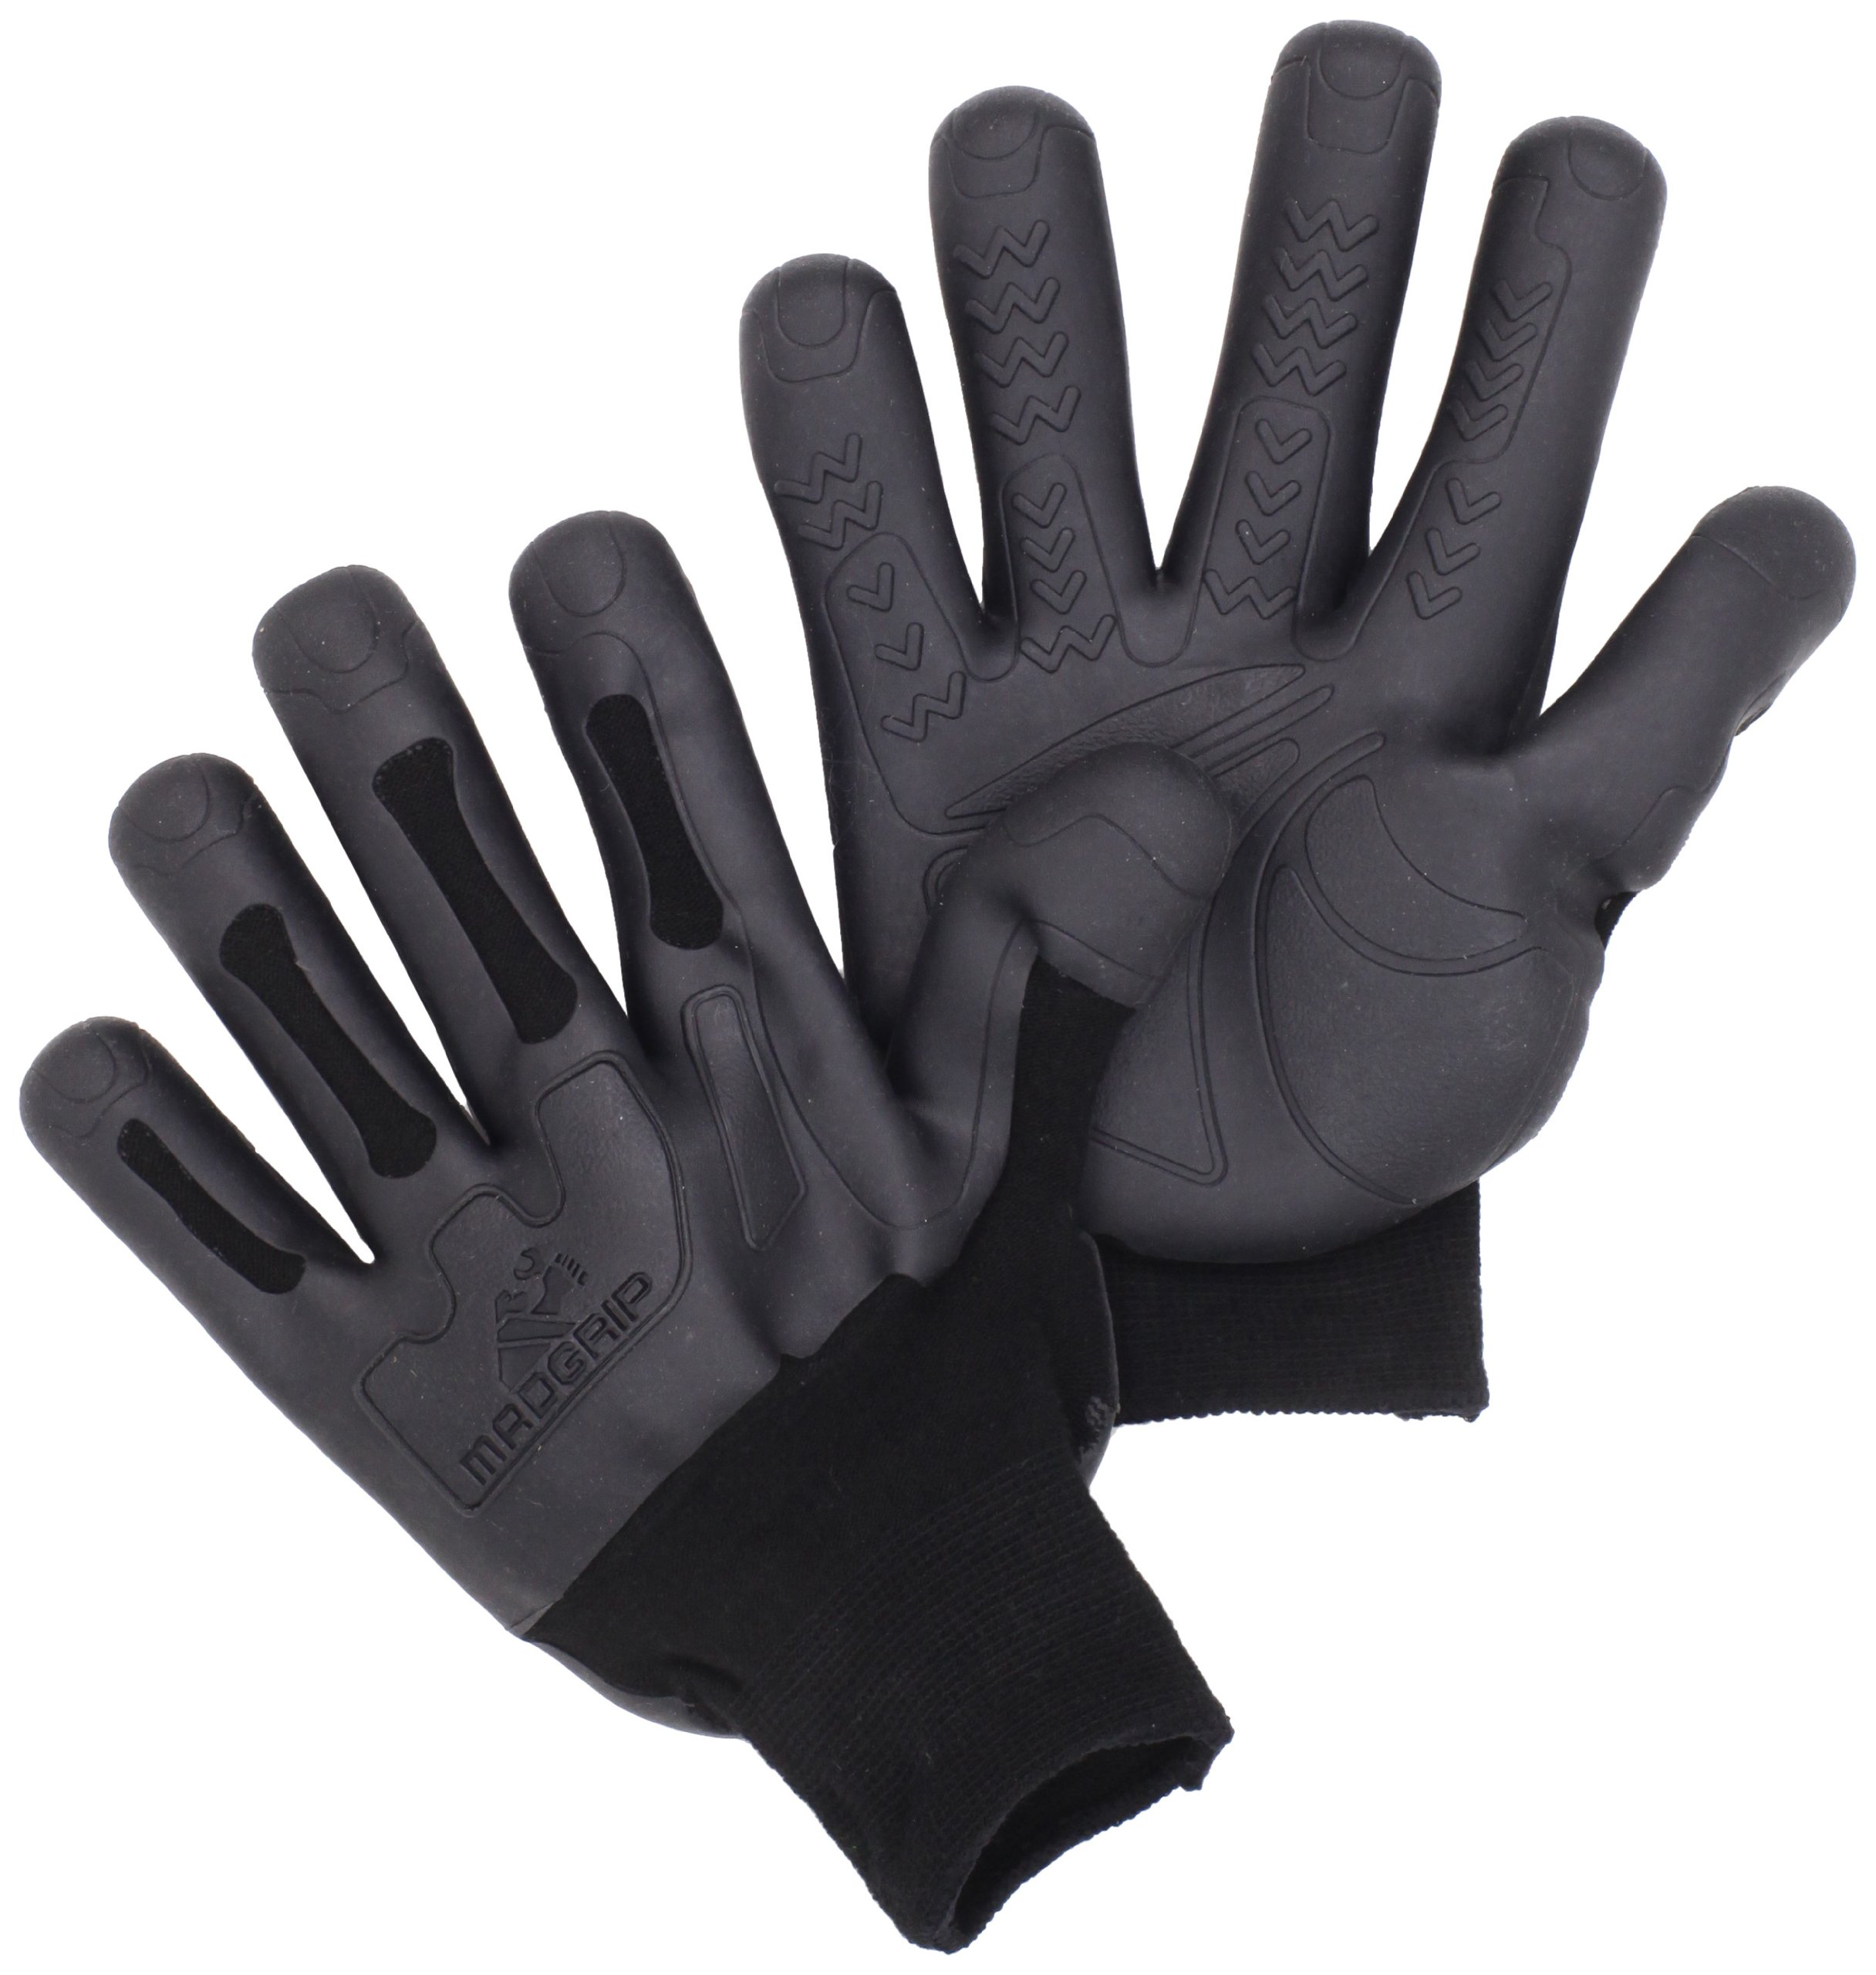 Mad Grip Pro Palm Knuckler Glove 100,Black/Black,Small/Medium by Mad Grip